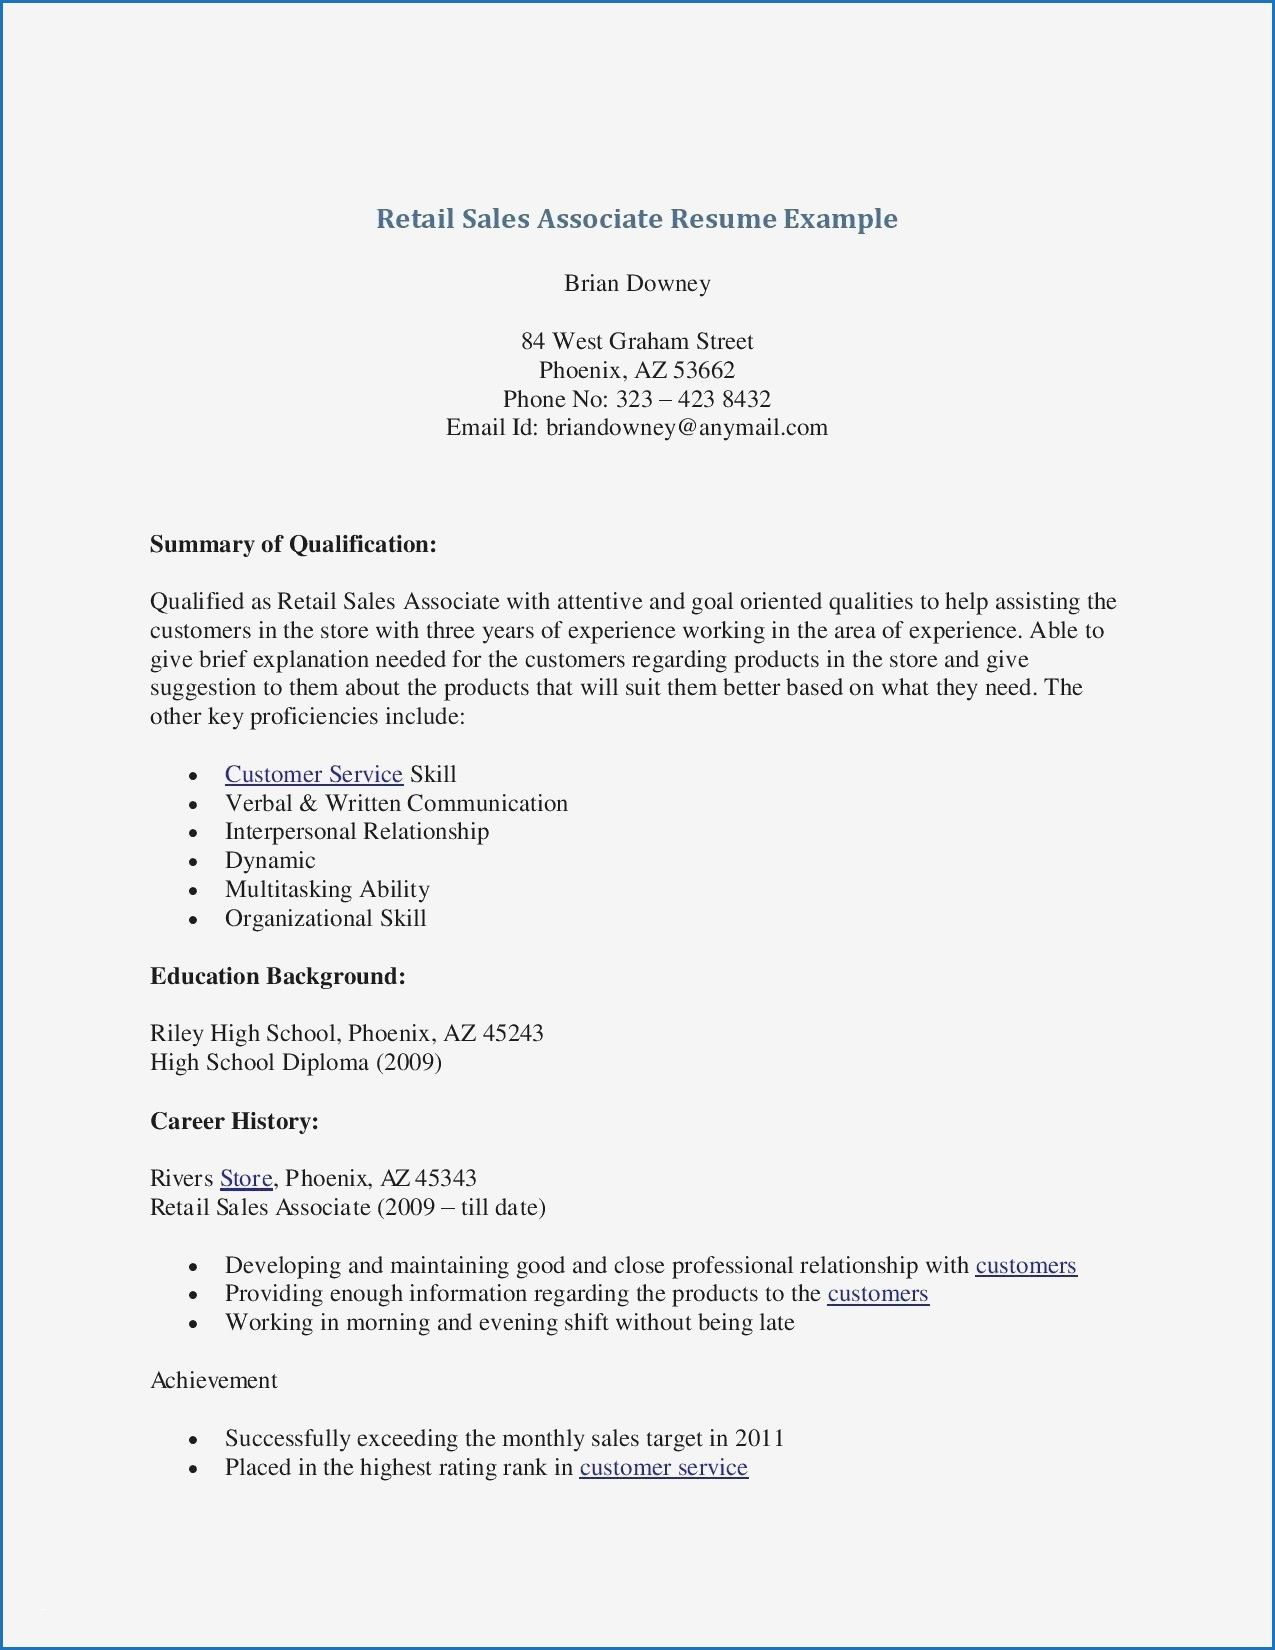 13 Resume Examples Of Sales Associates Check More At Https Www